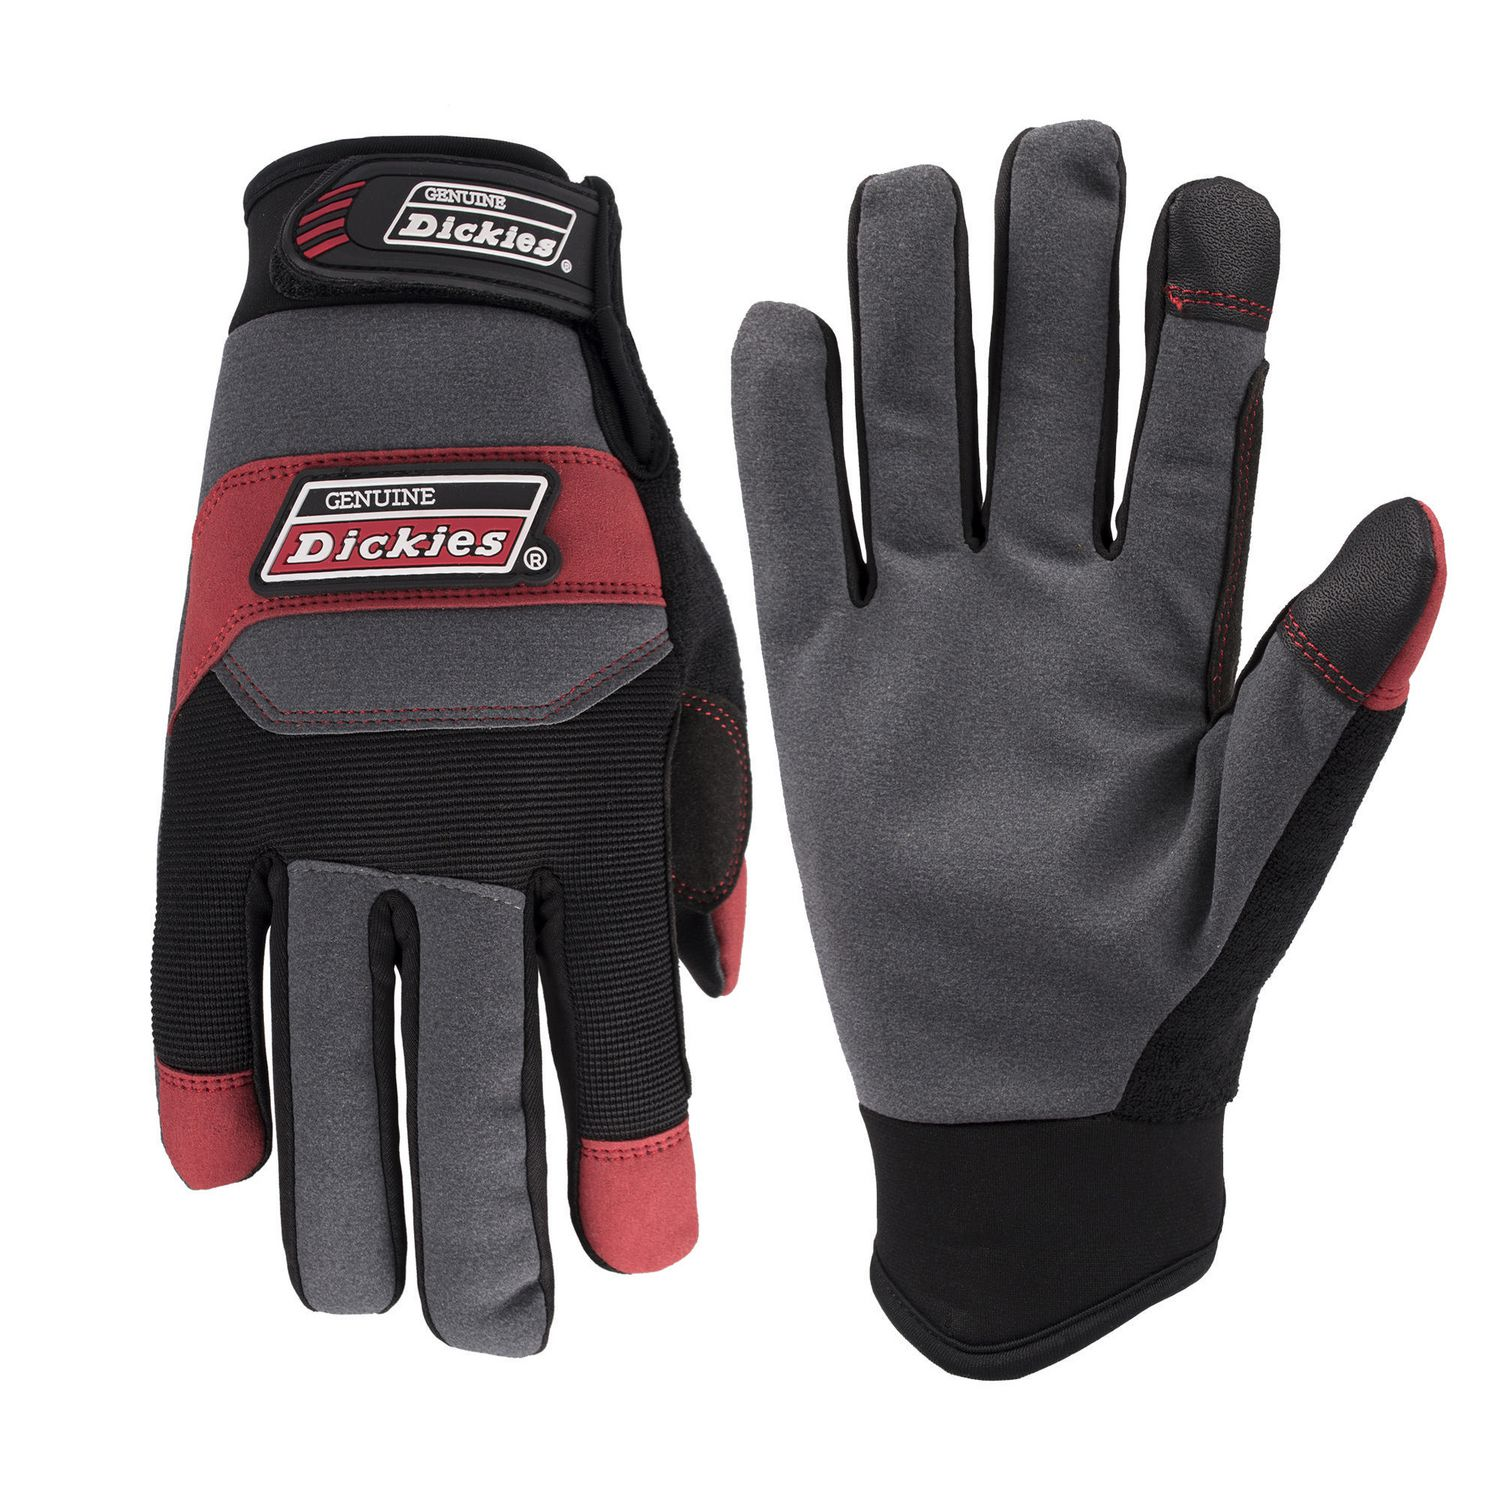 Gloves - Dickies Mechanic Synthetic Leather Glove - Blk/Red - M